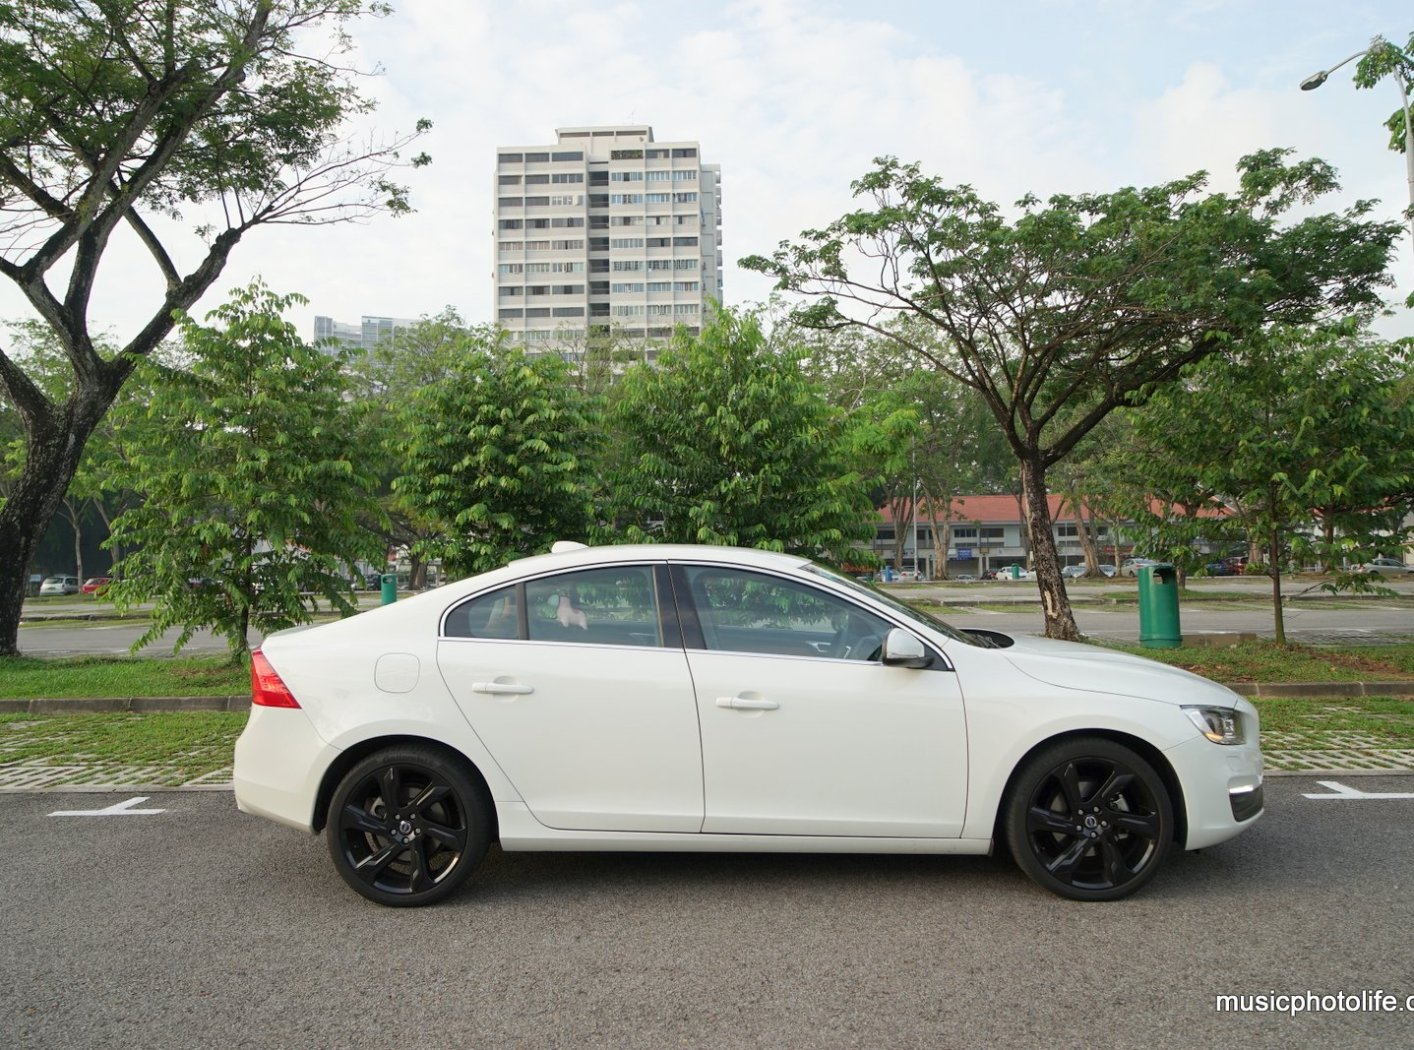 Volvo S60 T5 Drive E 2015 Sports Sedan Test Drive Review